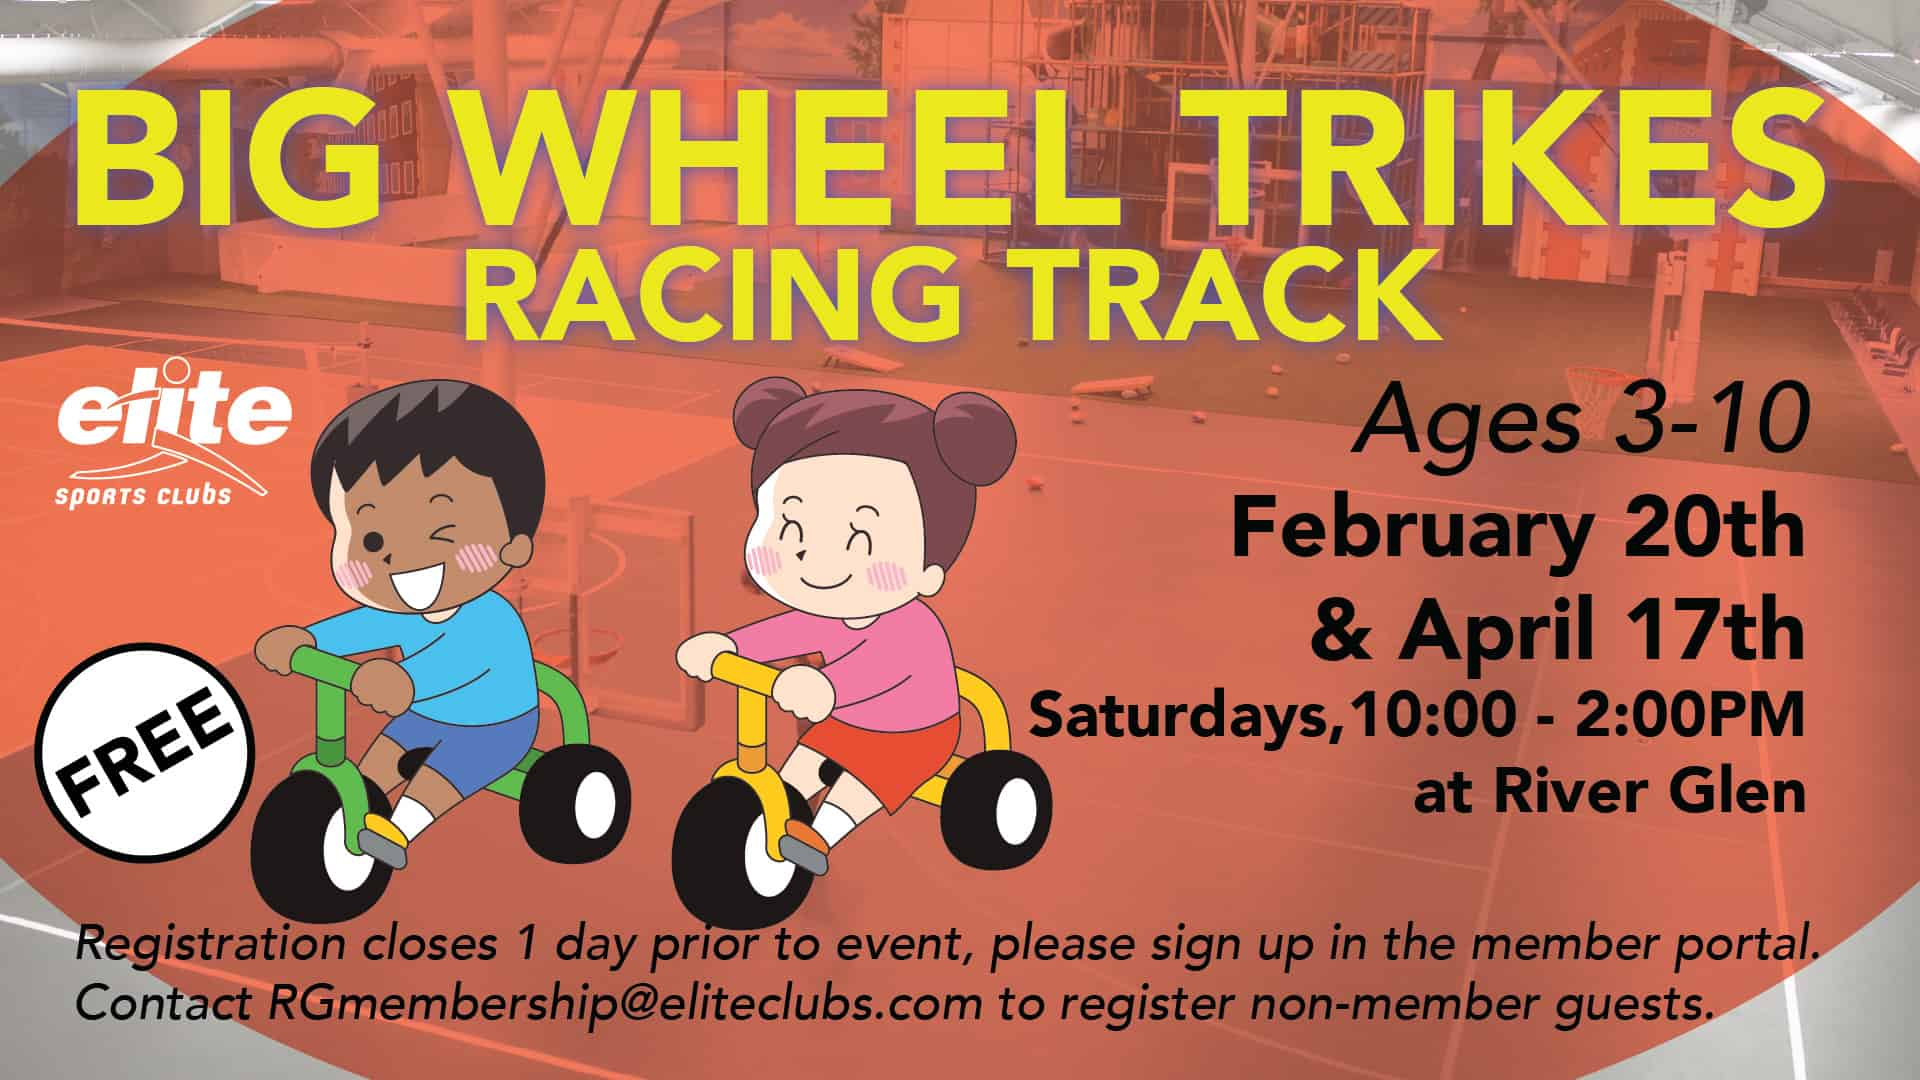 Big Wheel Trikes Racing Track - Elite River Glen - Spring 2021